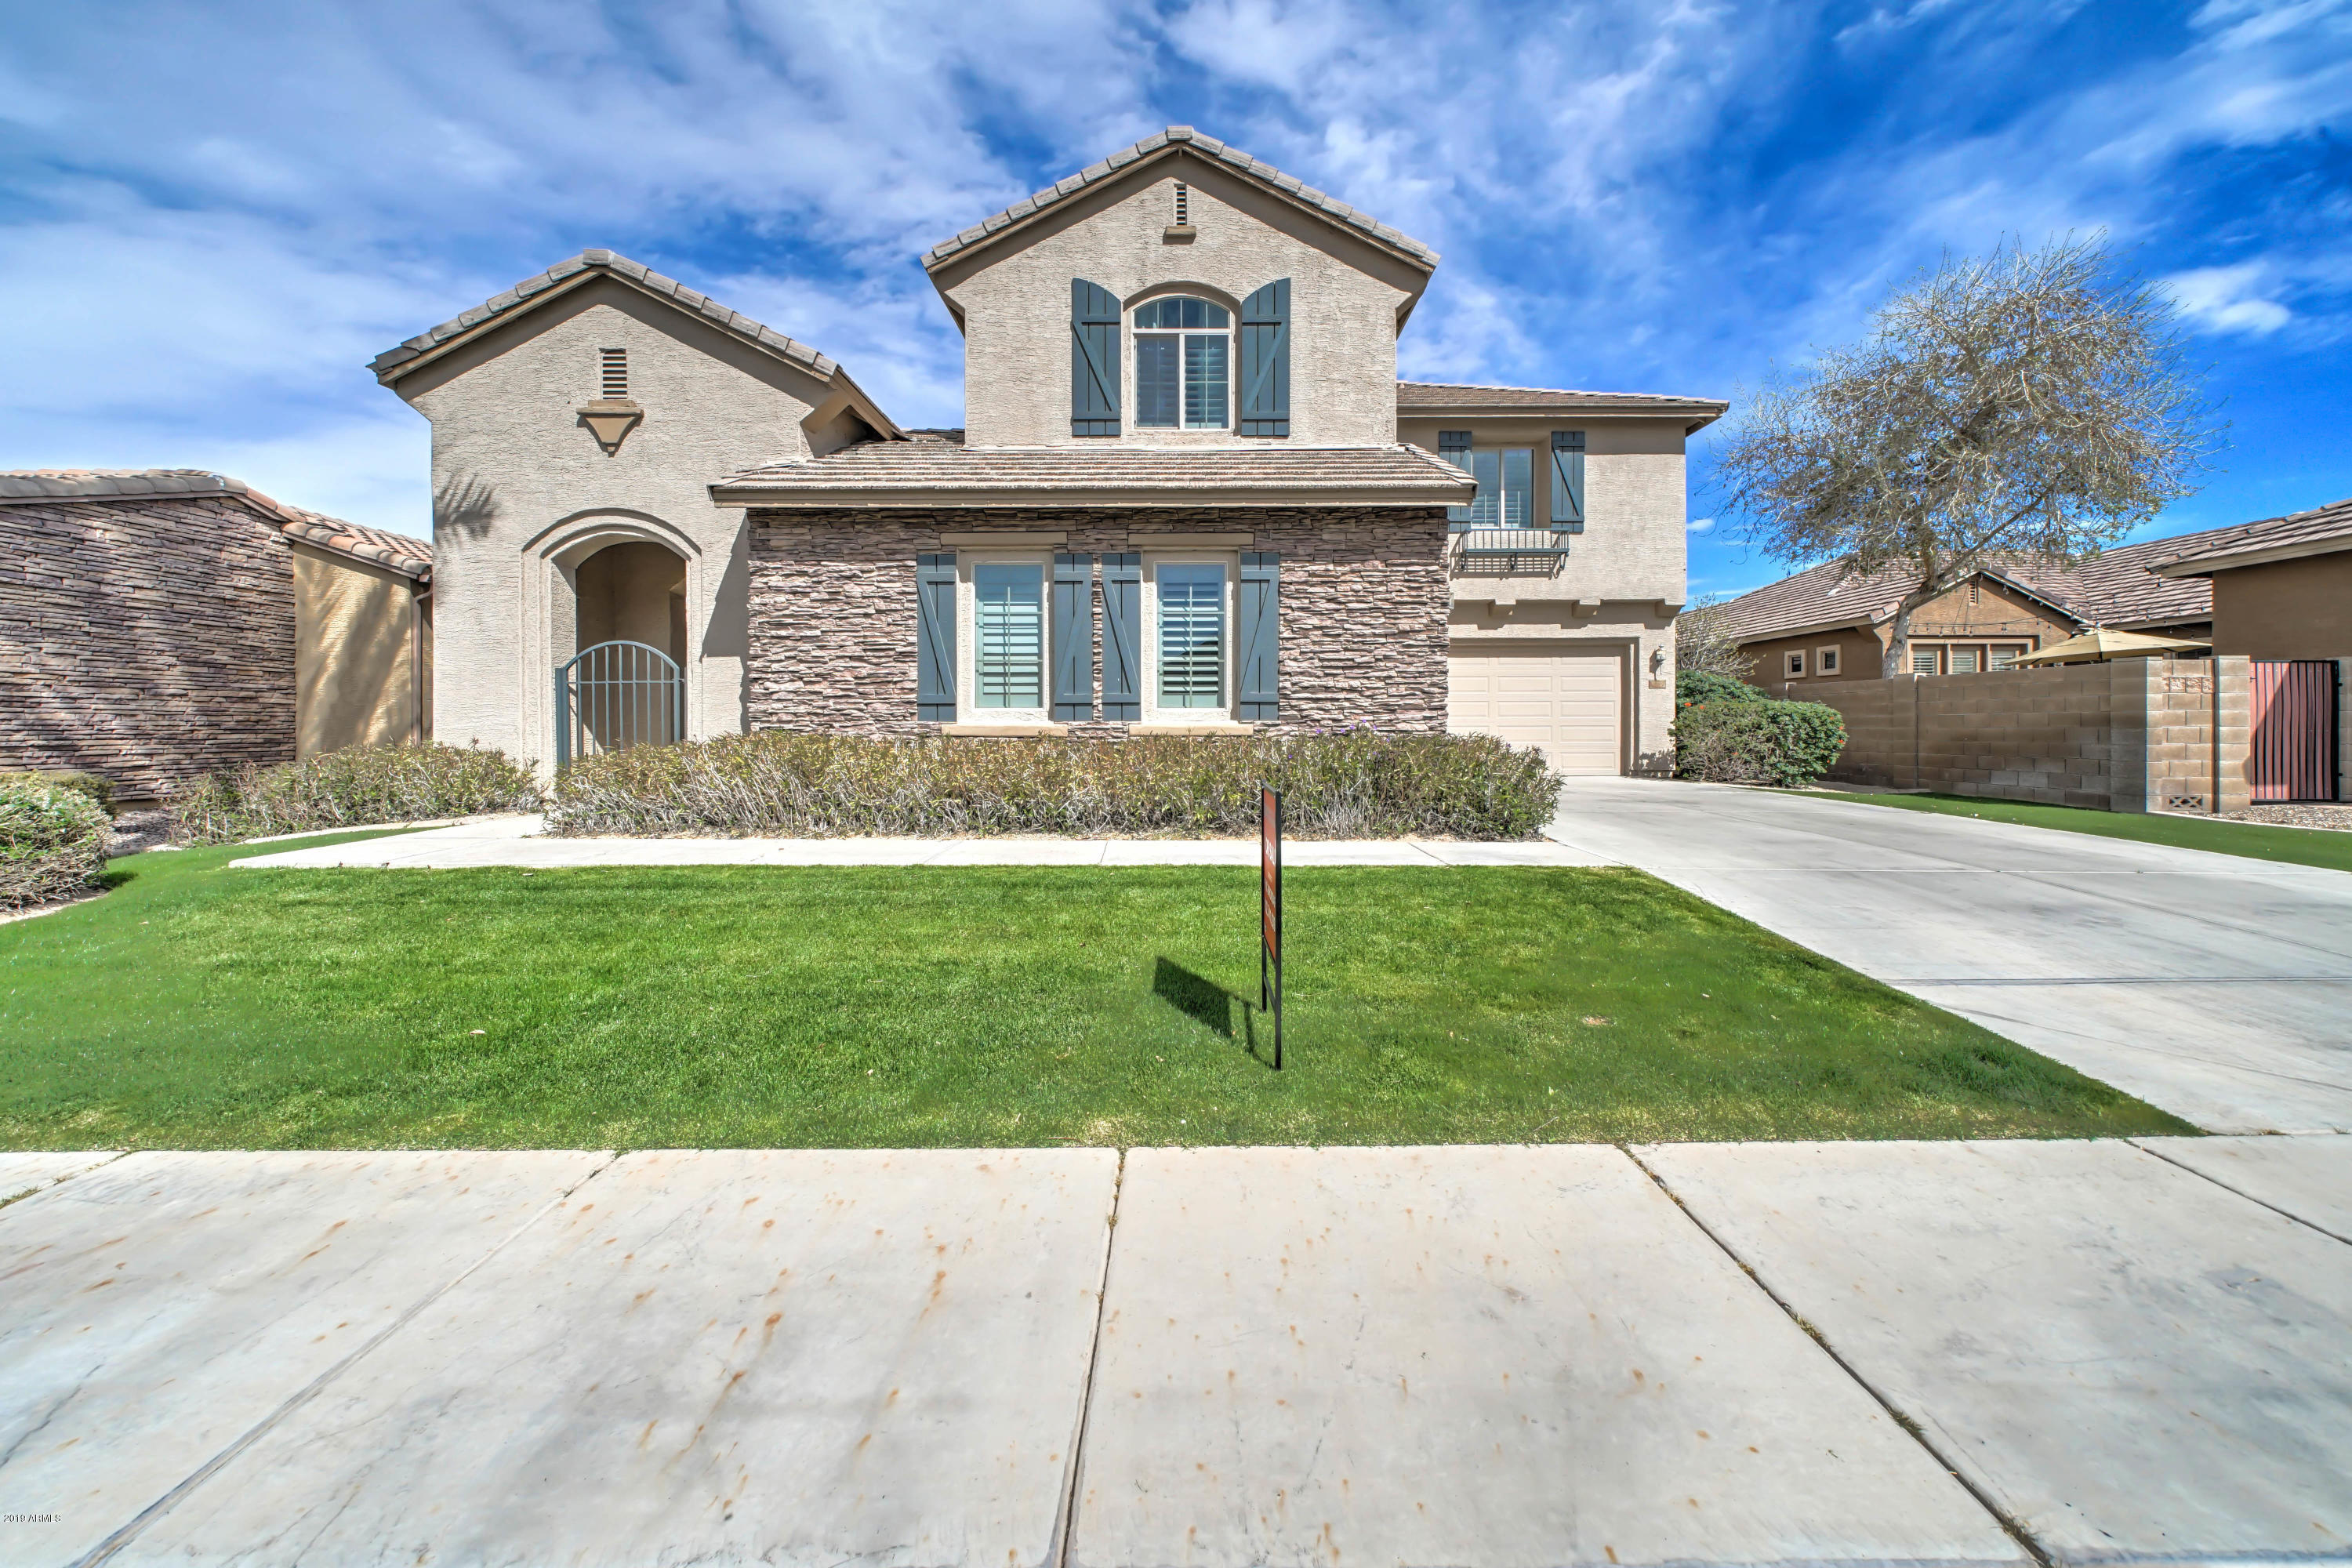 Photo of 2572 E LANTANA Drive, Chandler, AZ 85286